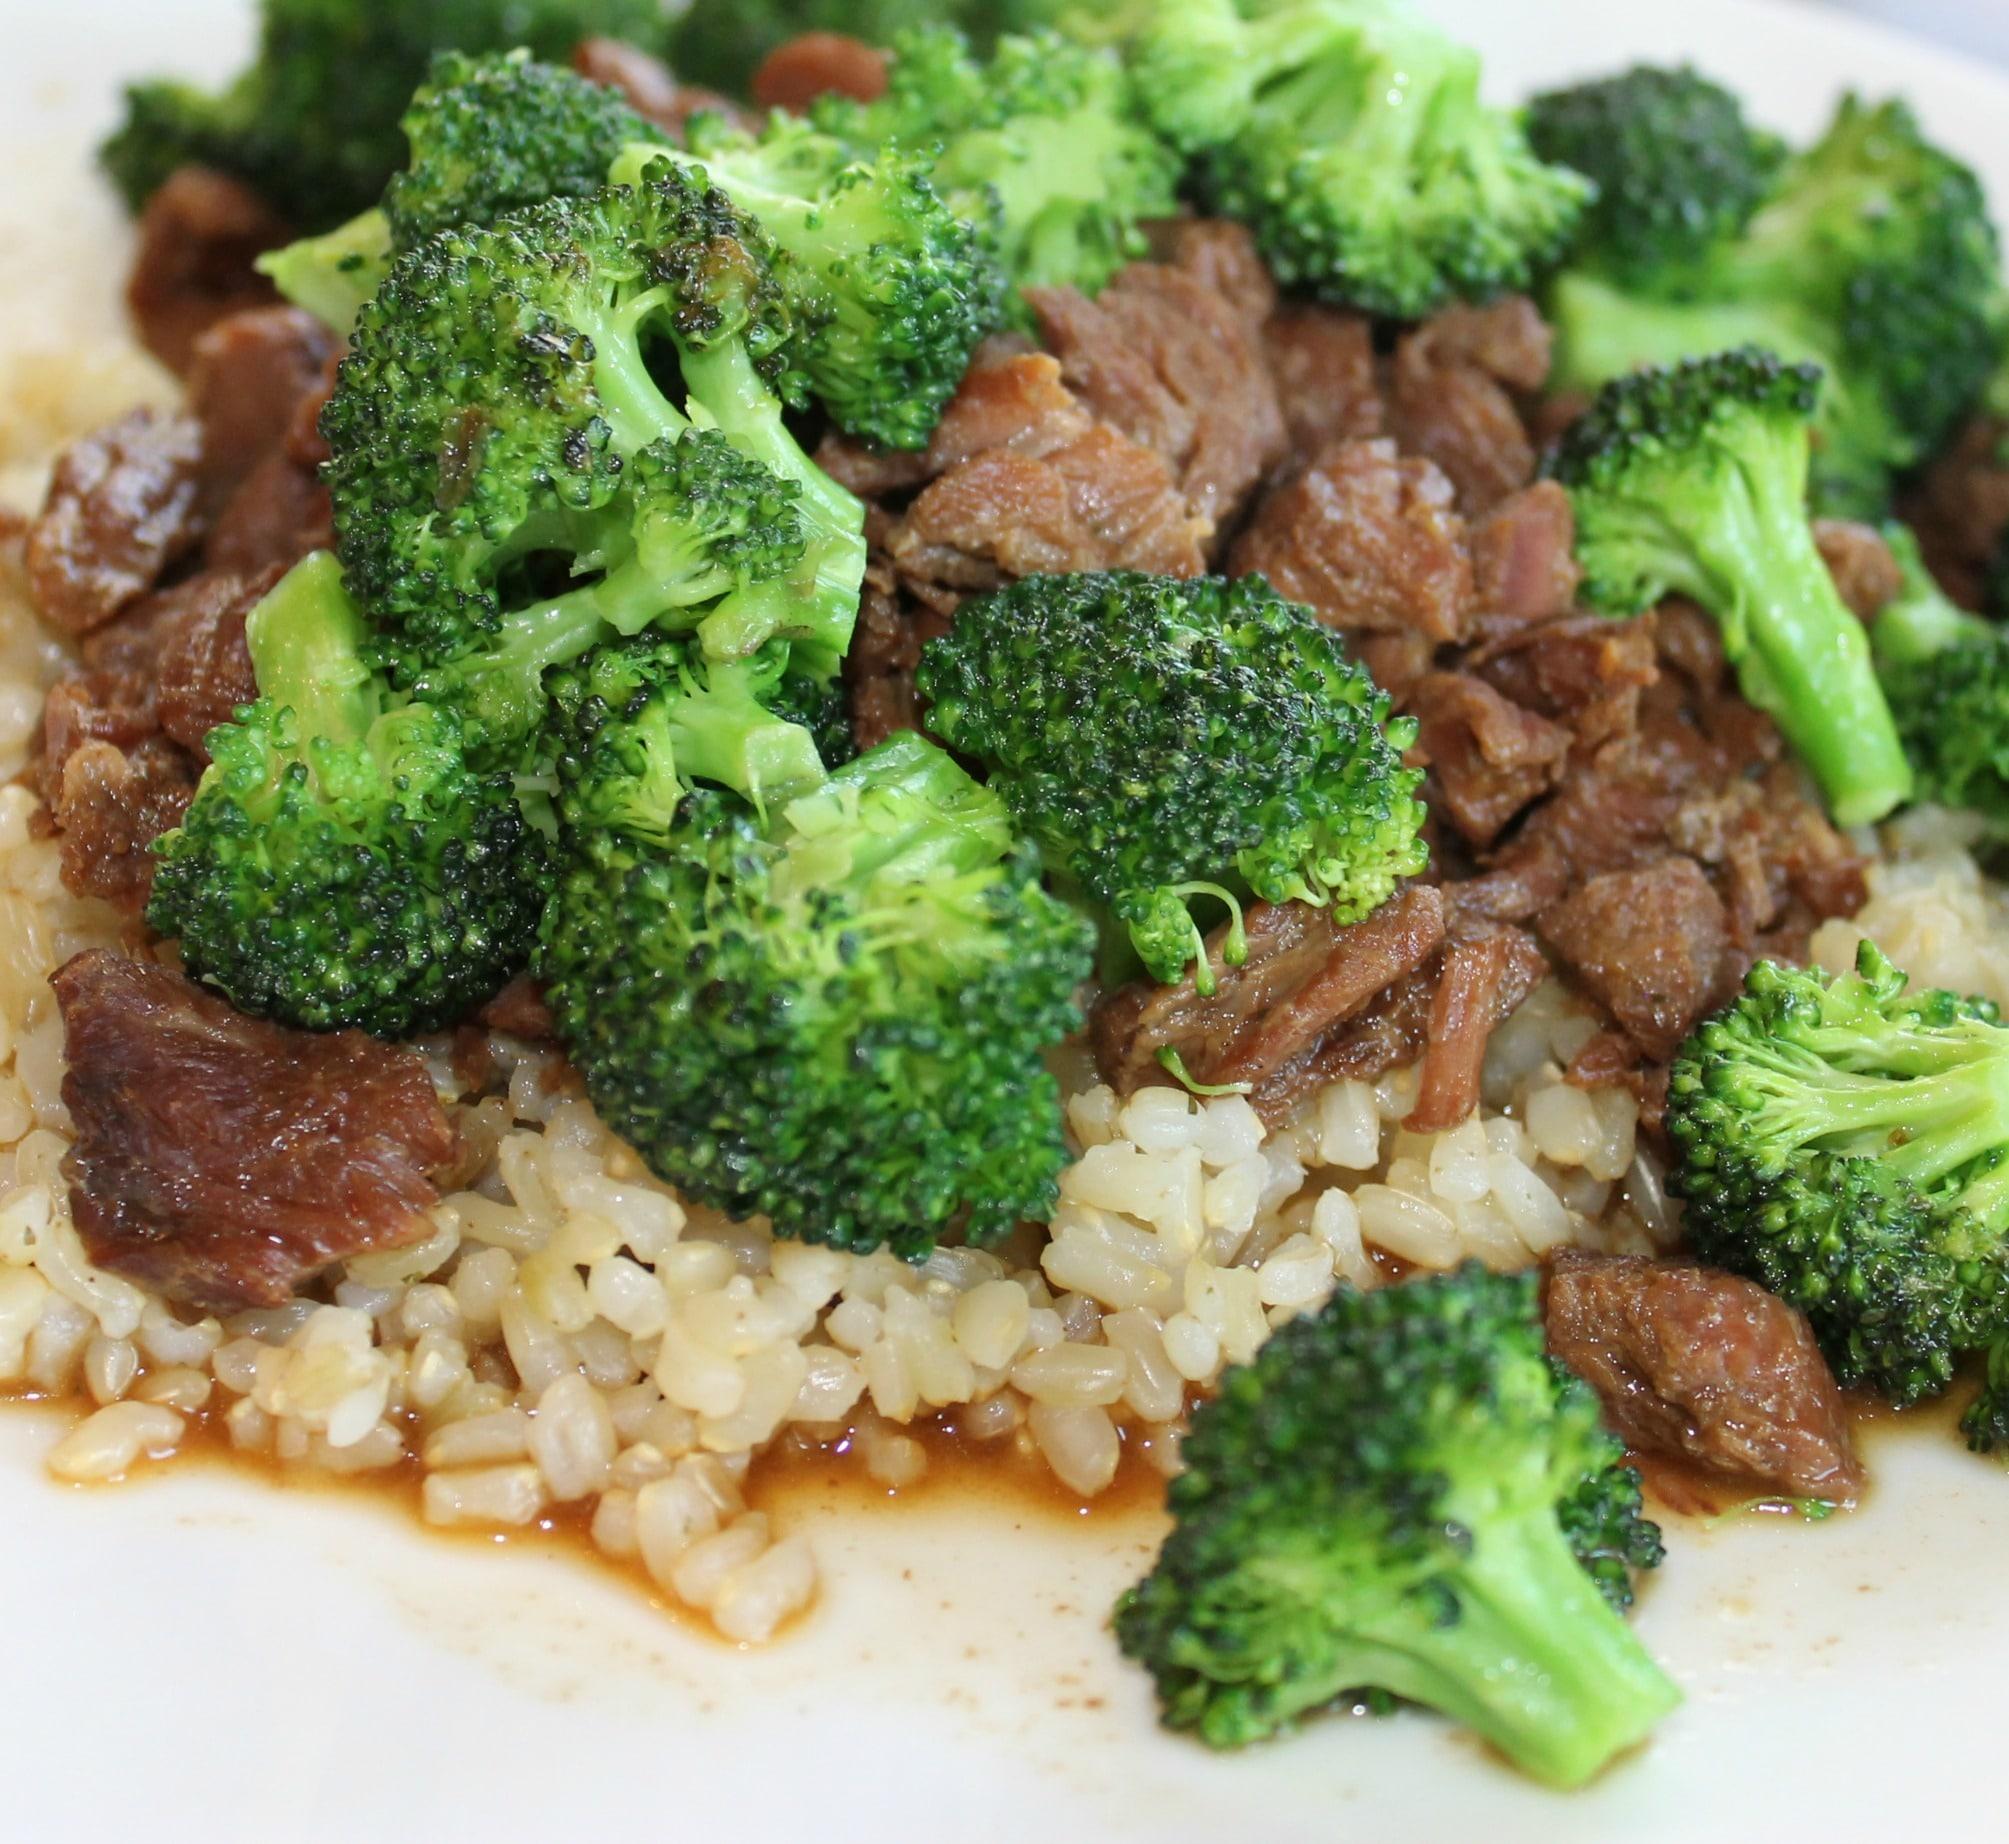 Slow Cooked Beef & Broccoli | thenourishedfamily.com